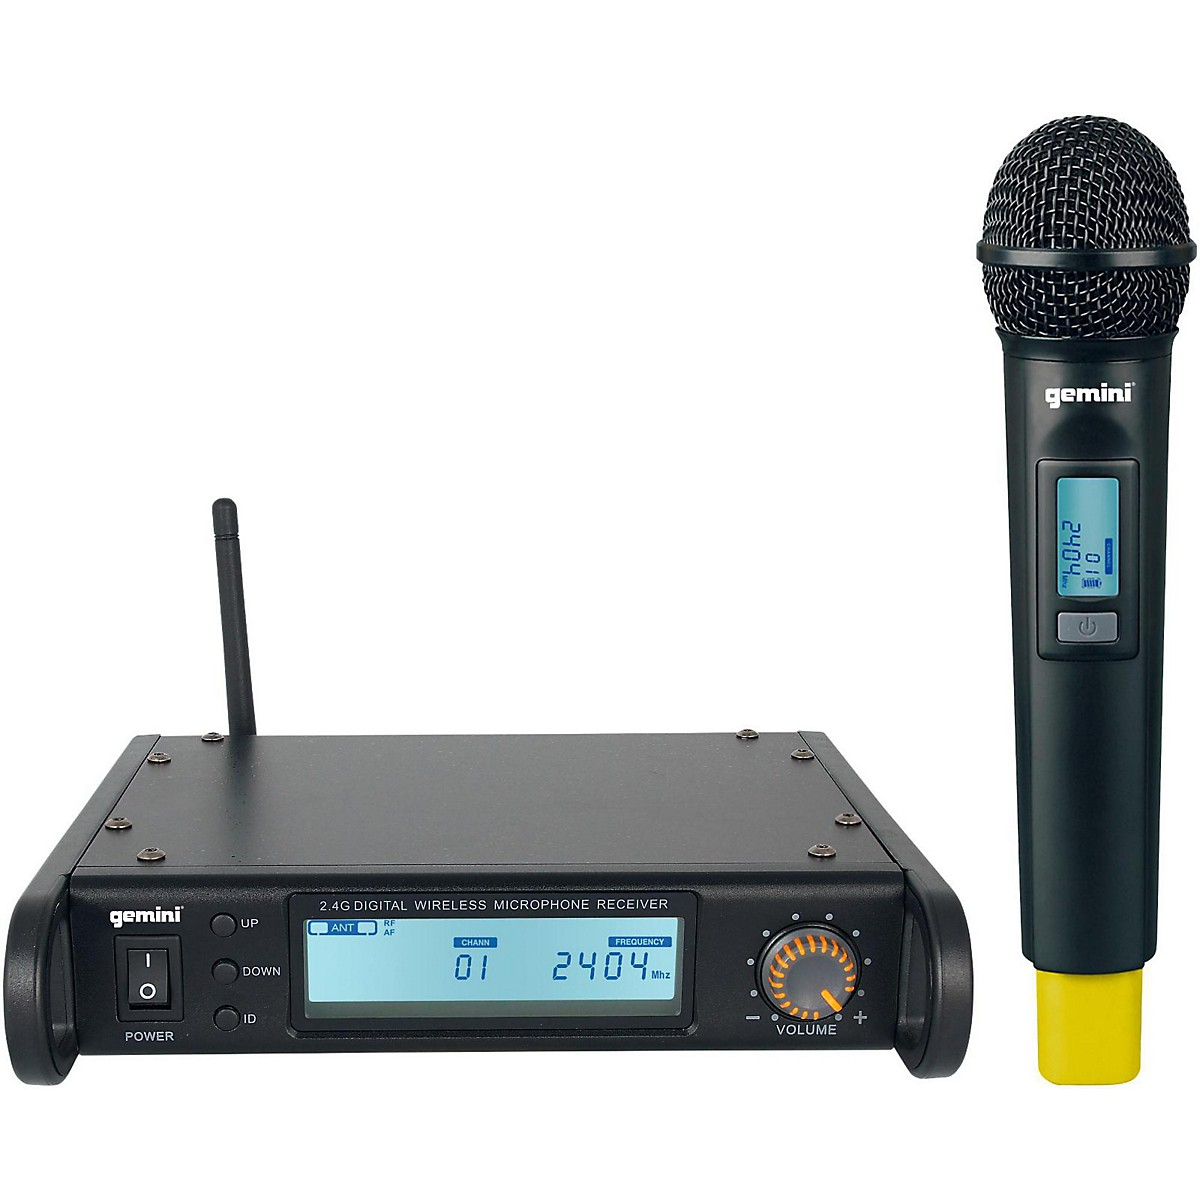 Gemini GDX-1000M Digital Wireless Microphone system